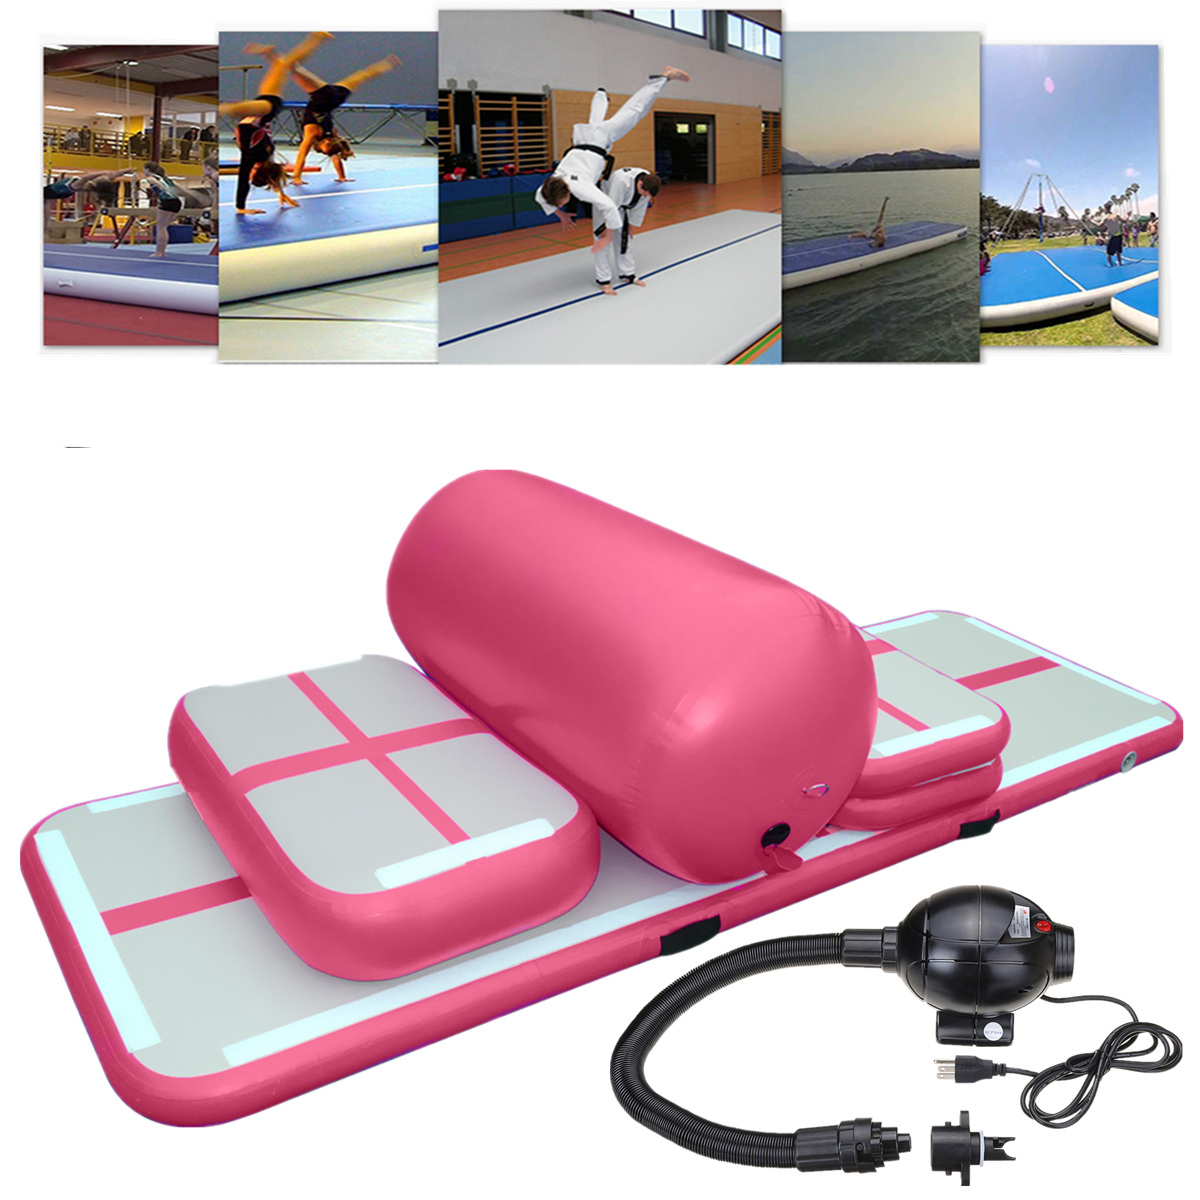 Pink Mats Foldable Inflatable Air Track Tumbling Gymnastic/Yoga/Taekwondo/Cheerleading Training Exercise Practice Mat with 110V Electrical Pump